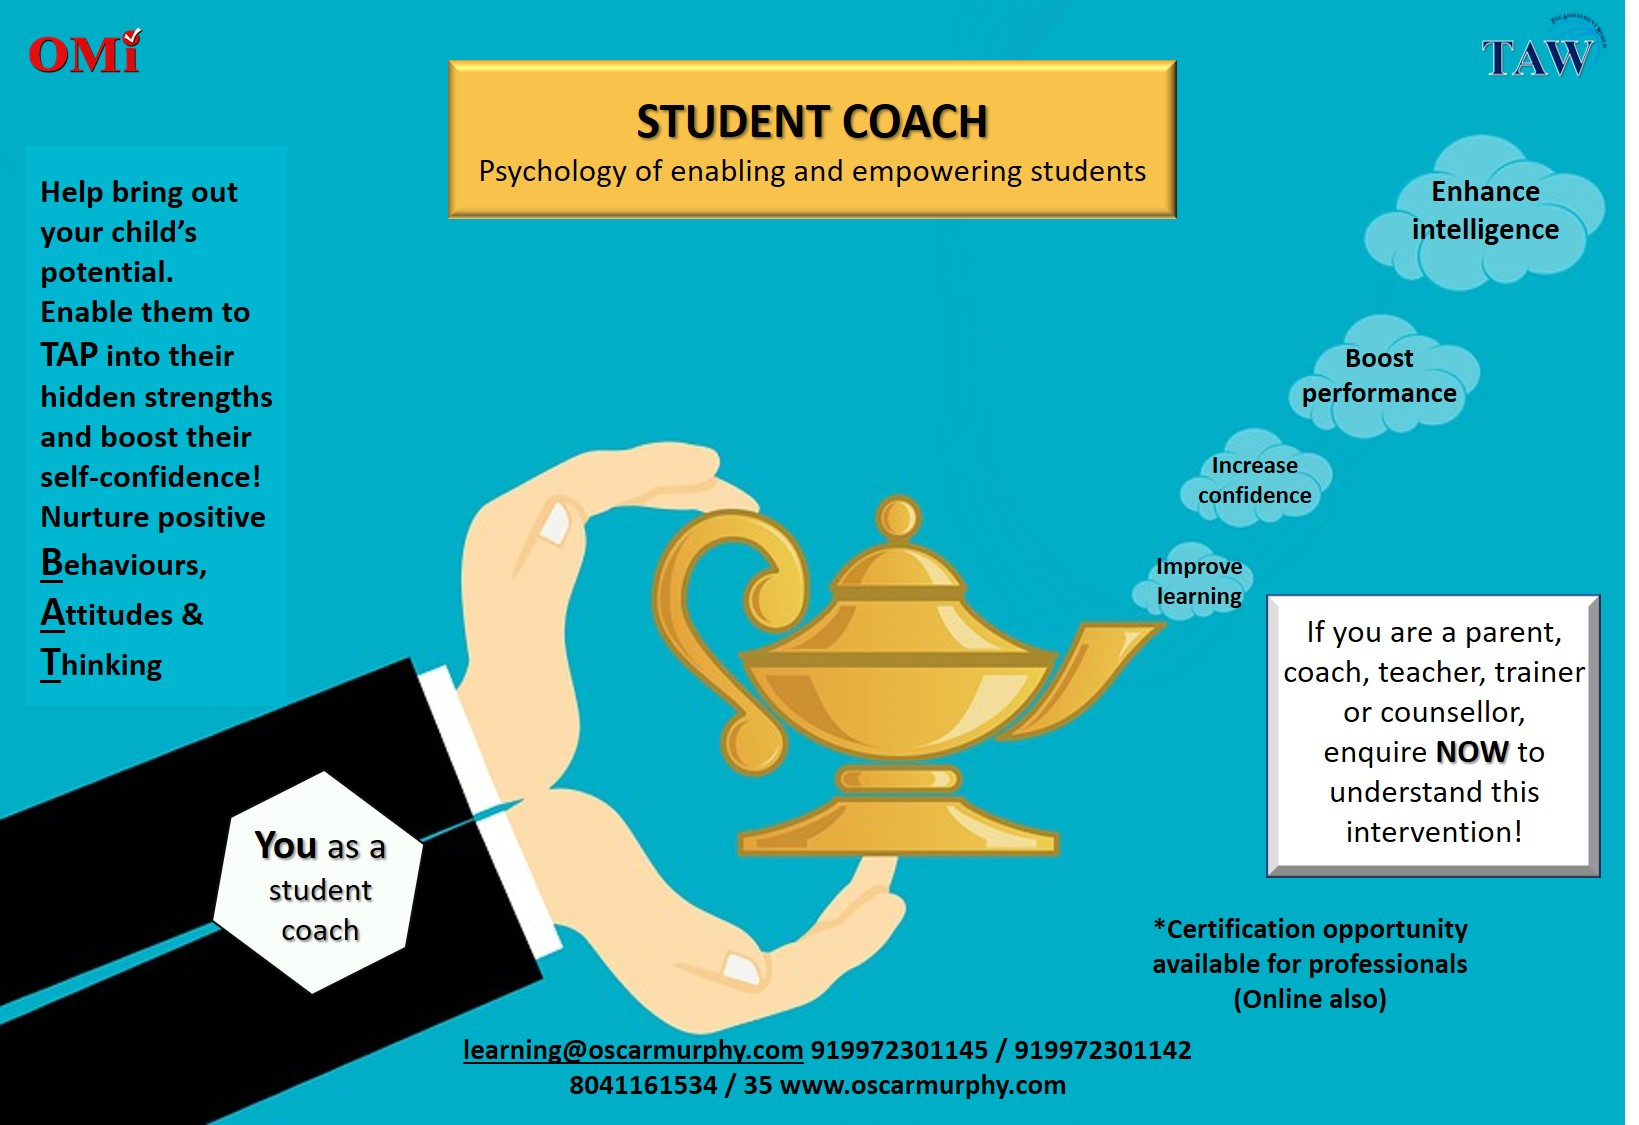 Student Coach website image